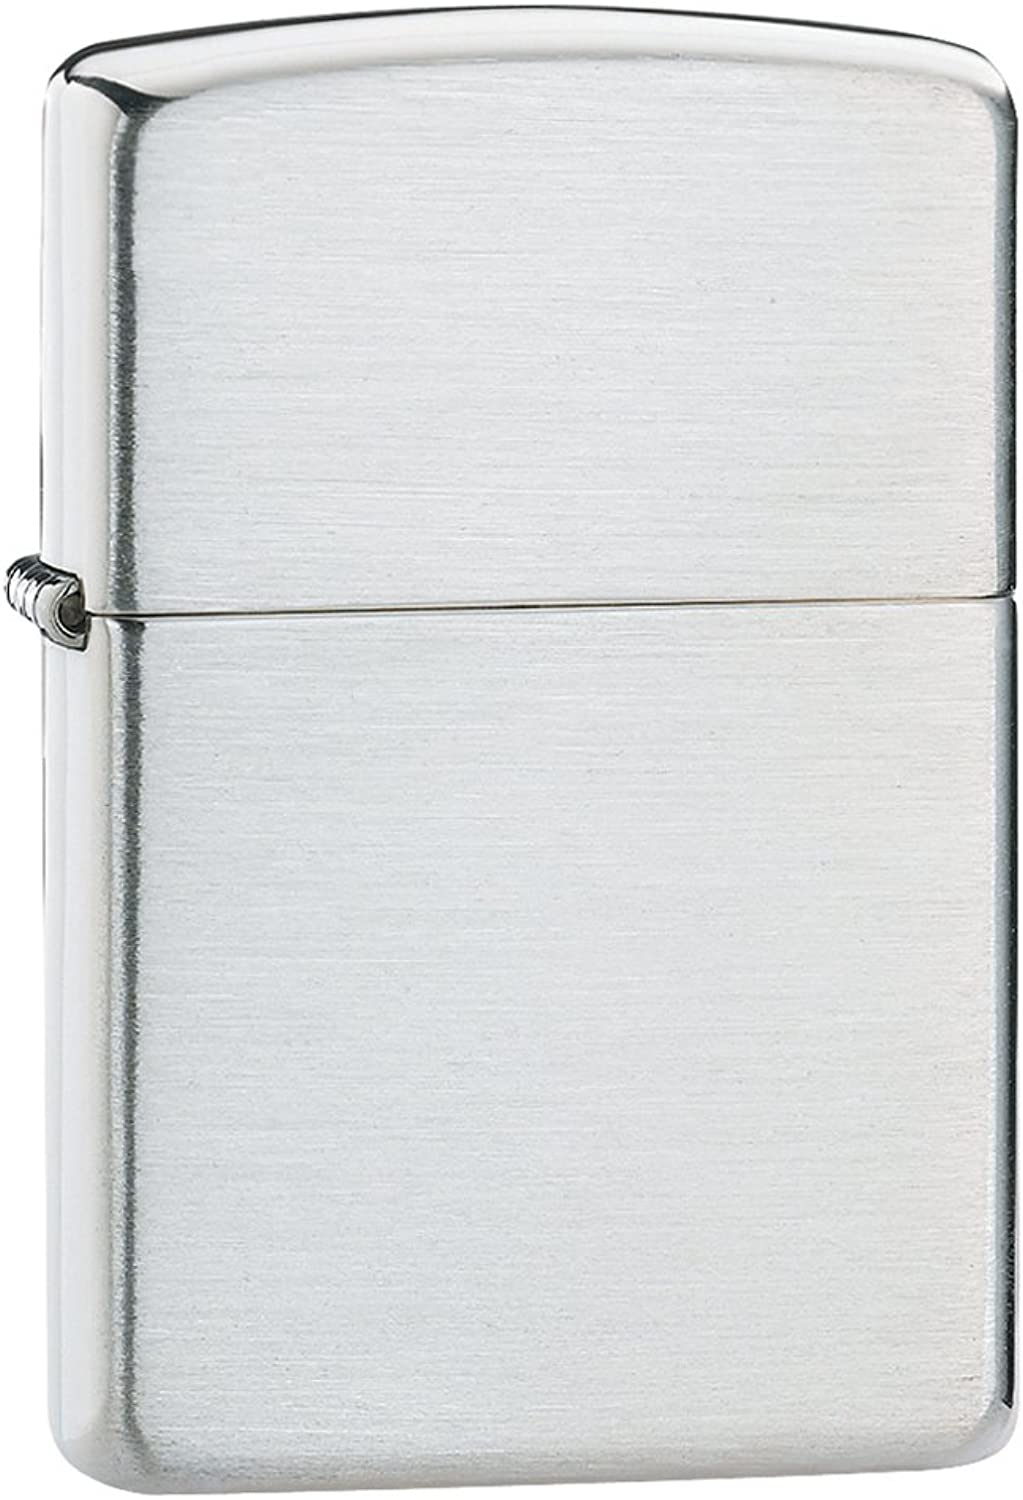 Zippo Windproof Lighter - Brushed Sterling Silber